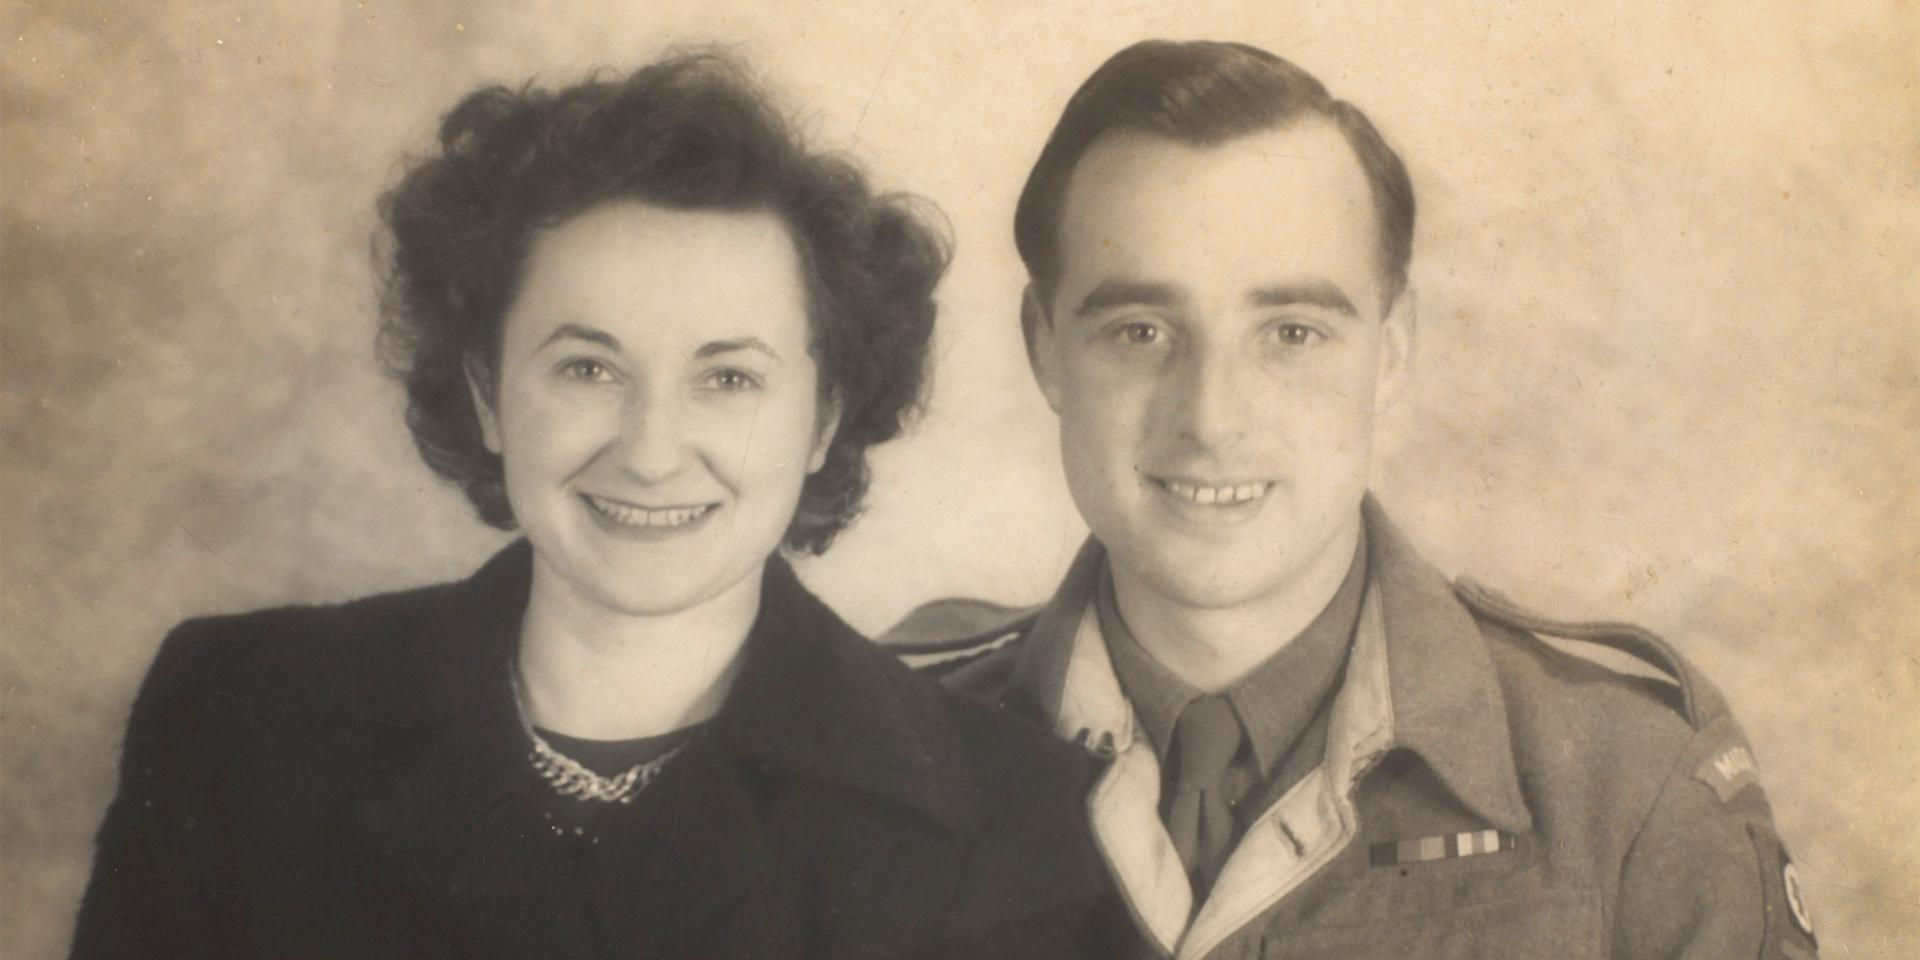 Sergeant Roy Bishop with his wife, Gwyn,shortly after their marriage, 1945